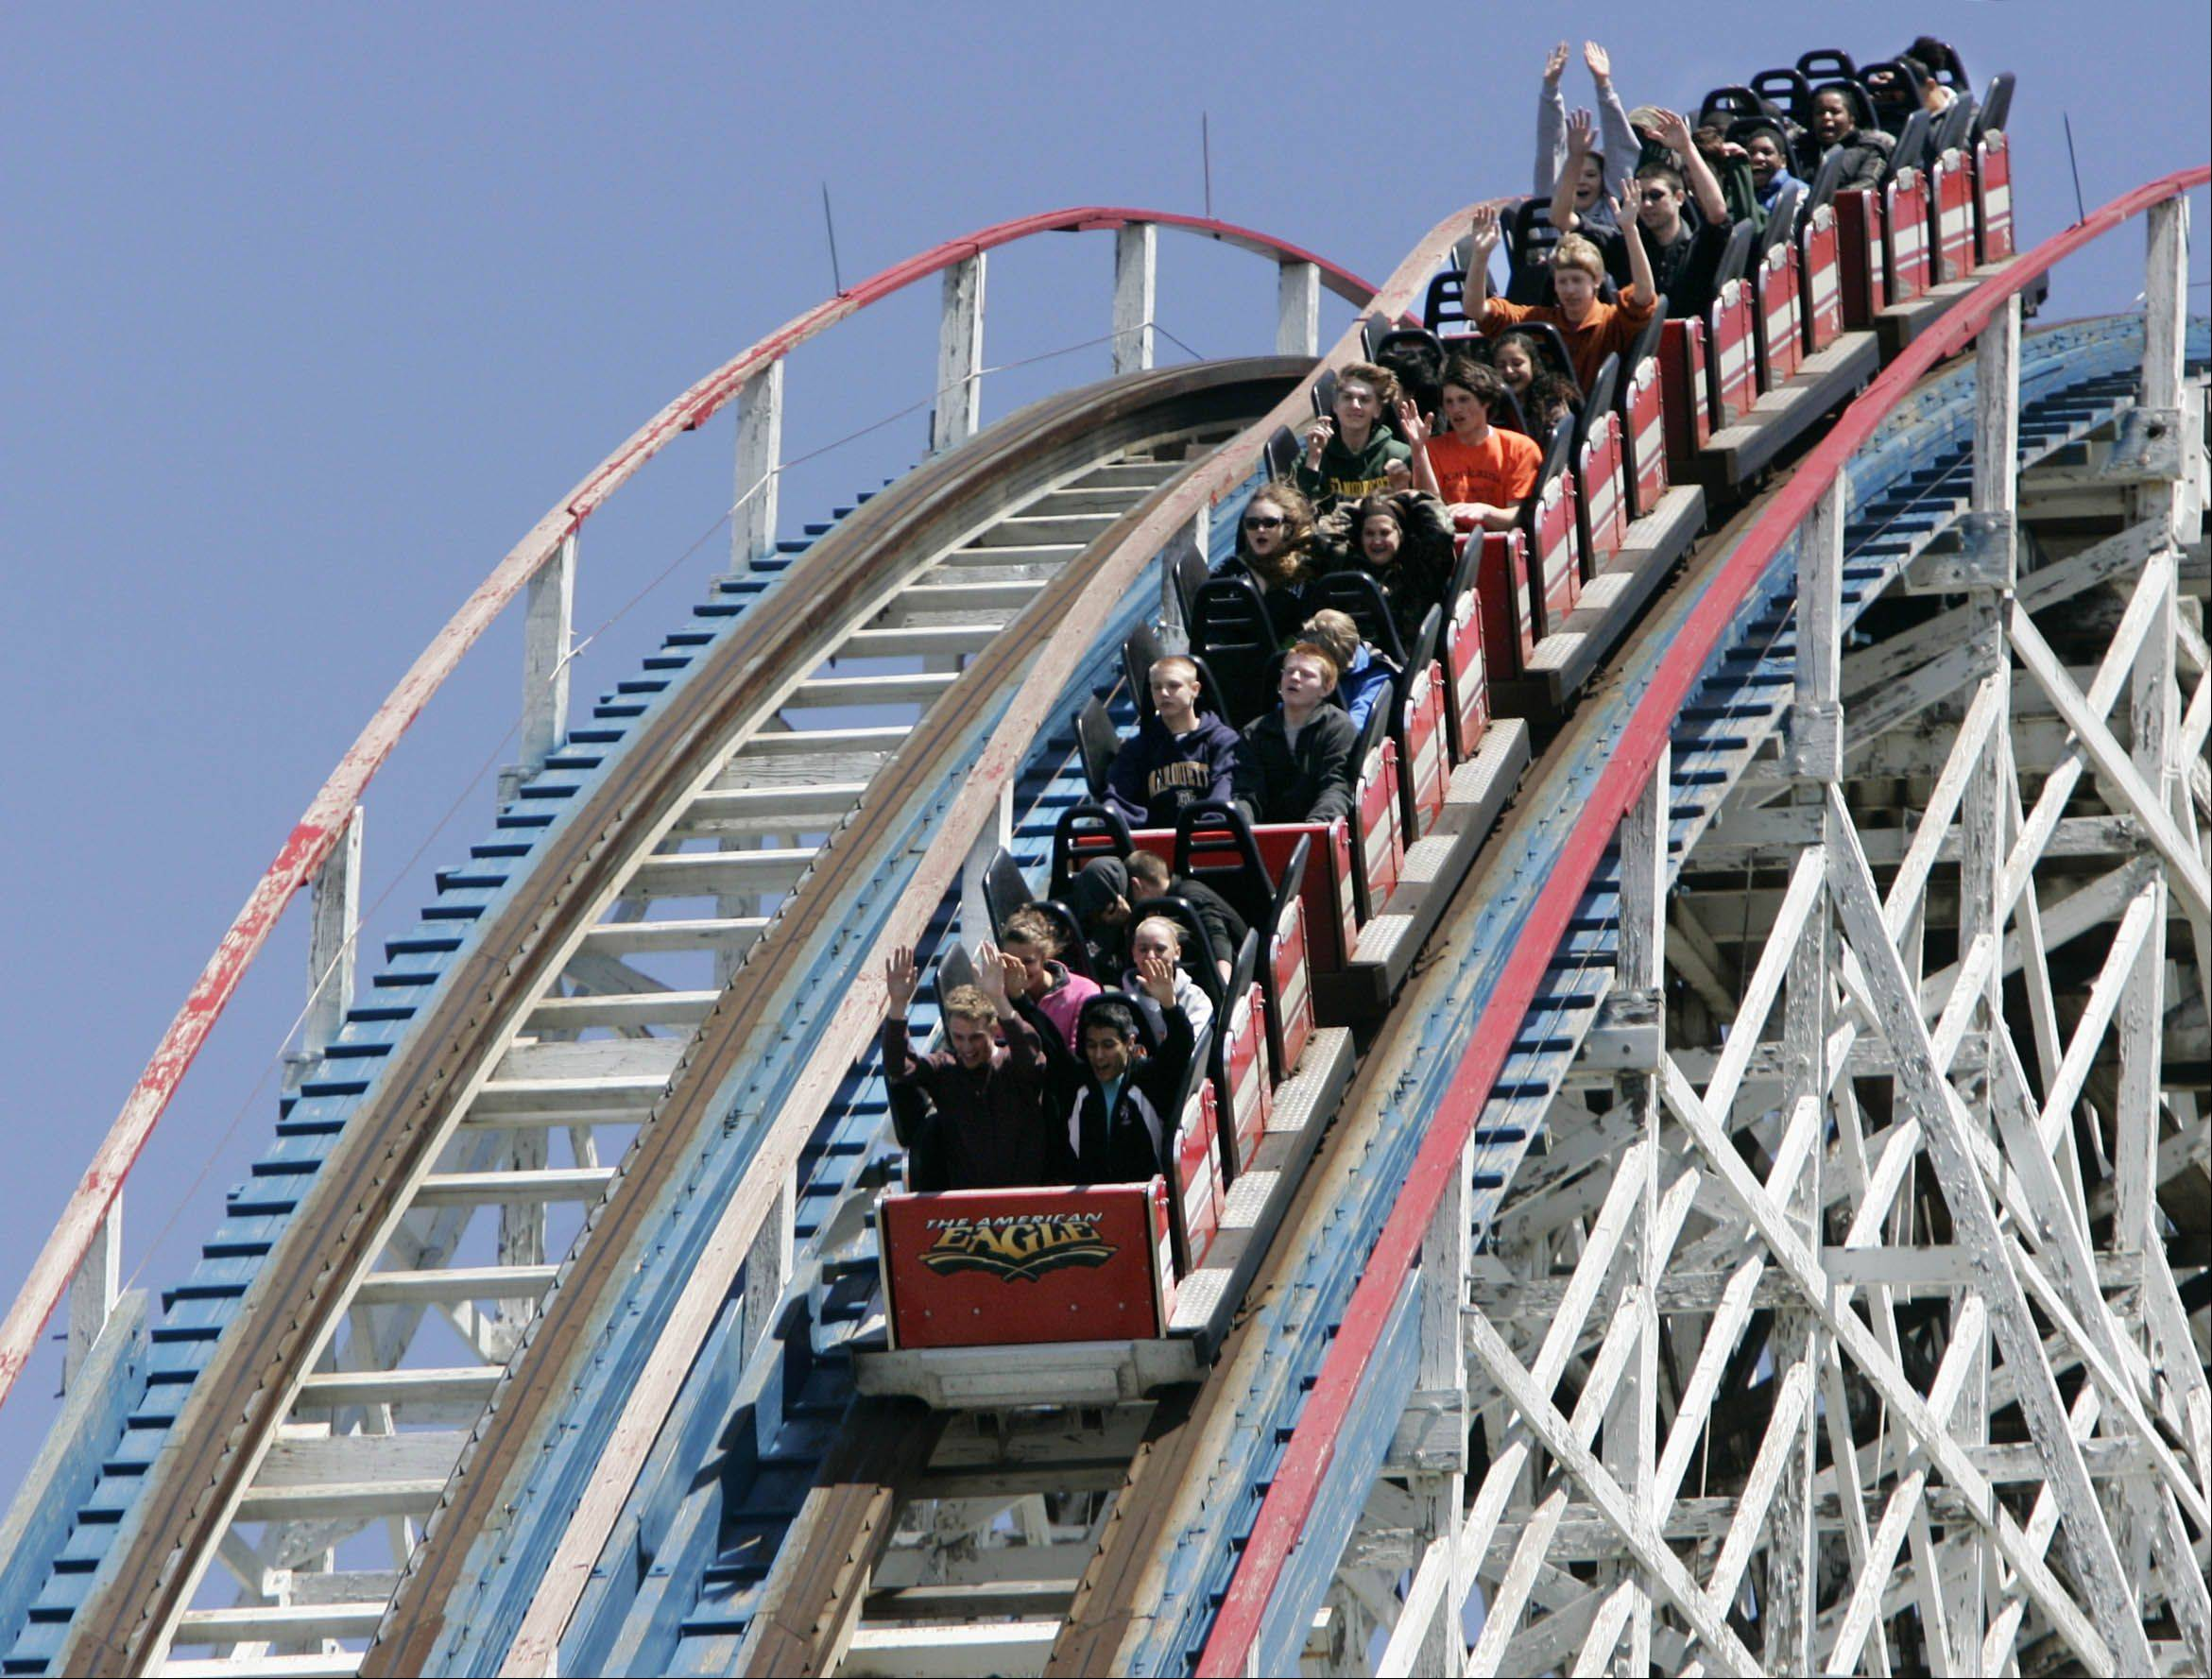 Coaster enthusiasts ride the American Eagle roller